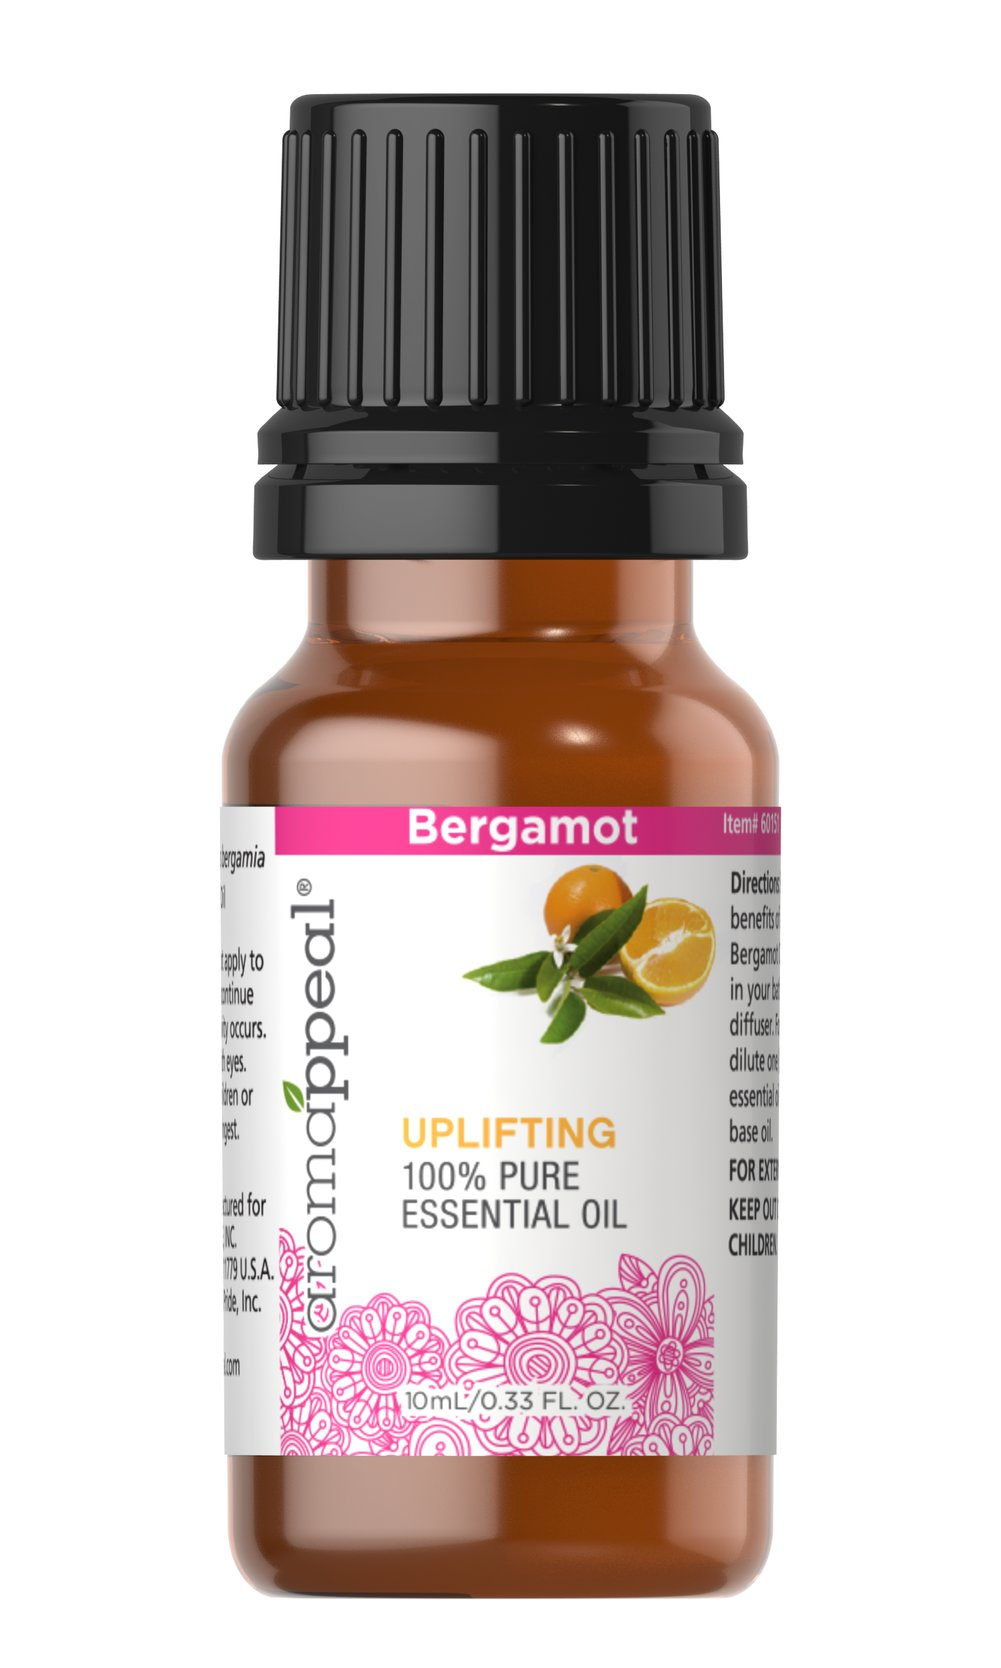 Bergamot 100% Pure Essential Oil Gently coax yourself into a state of utter tranquility and serenity with the fresh, fruity scent of Bergamot. This purifying oil is perfect for when you want to lull yourself into peaceful meditation.  10 ml Oil  $12.99